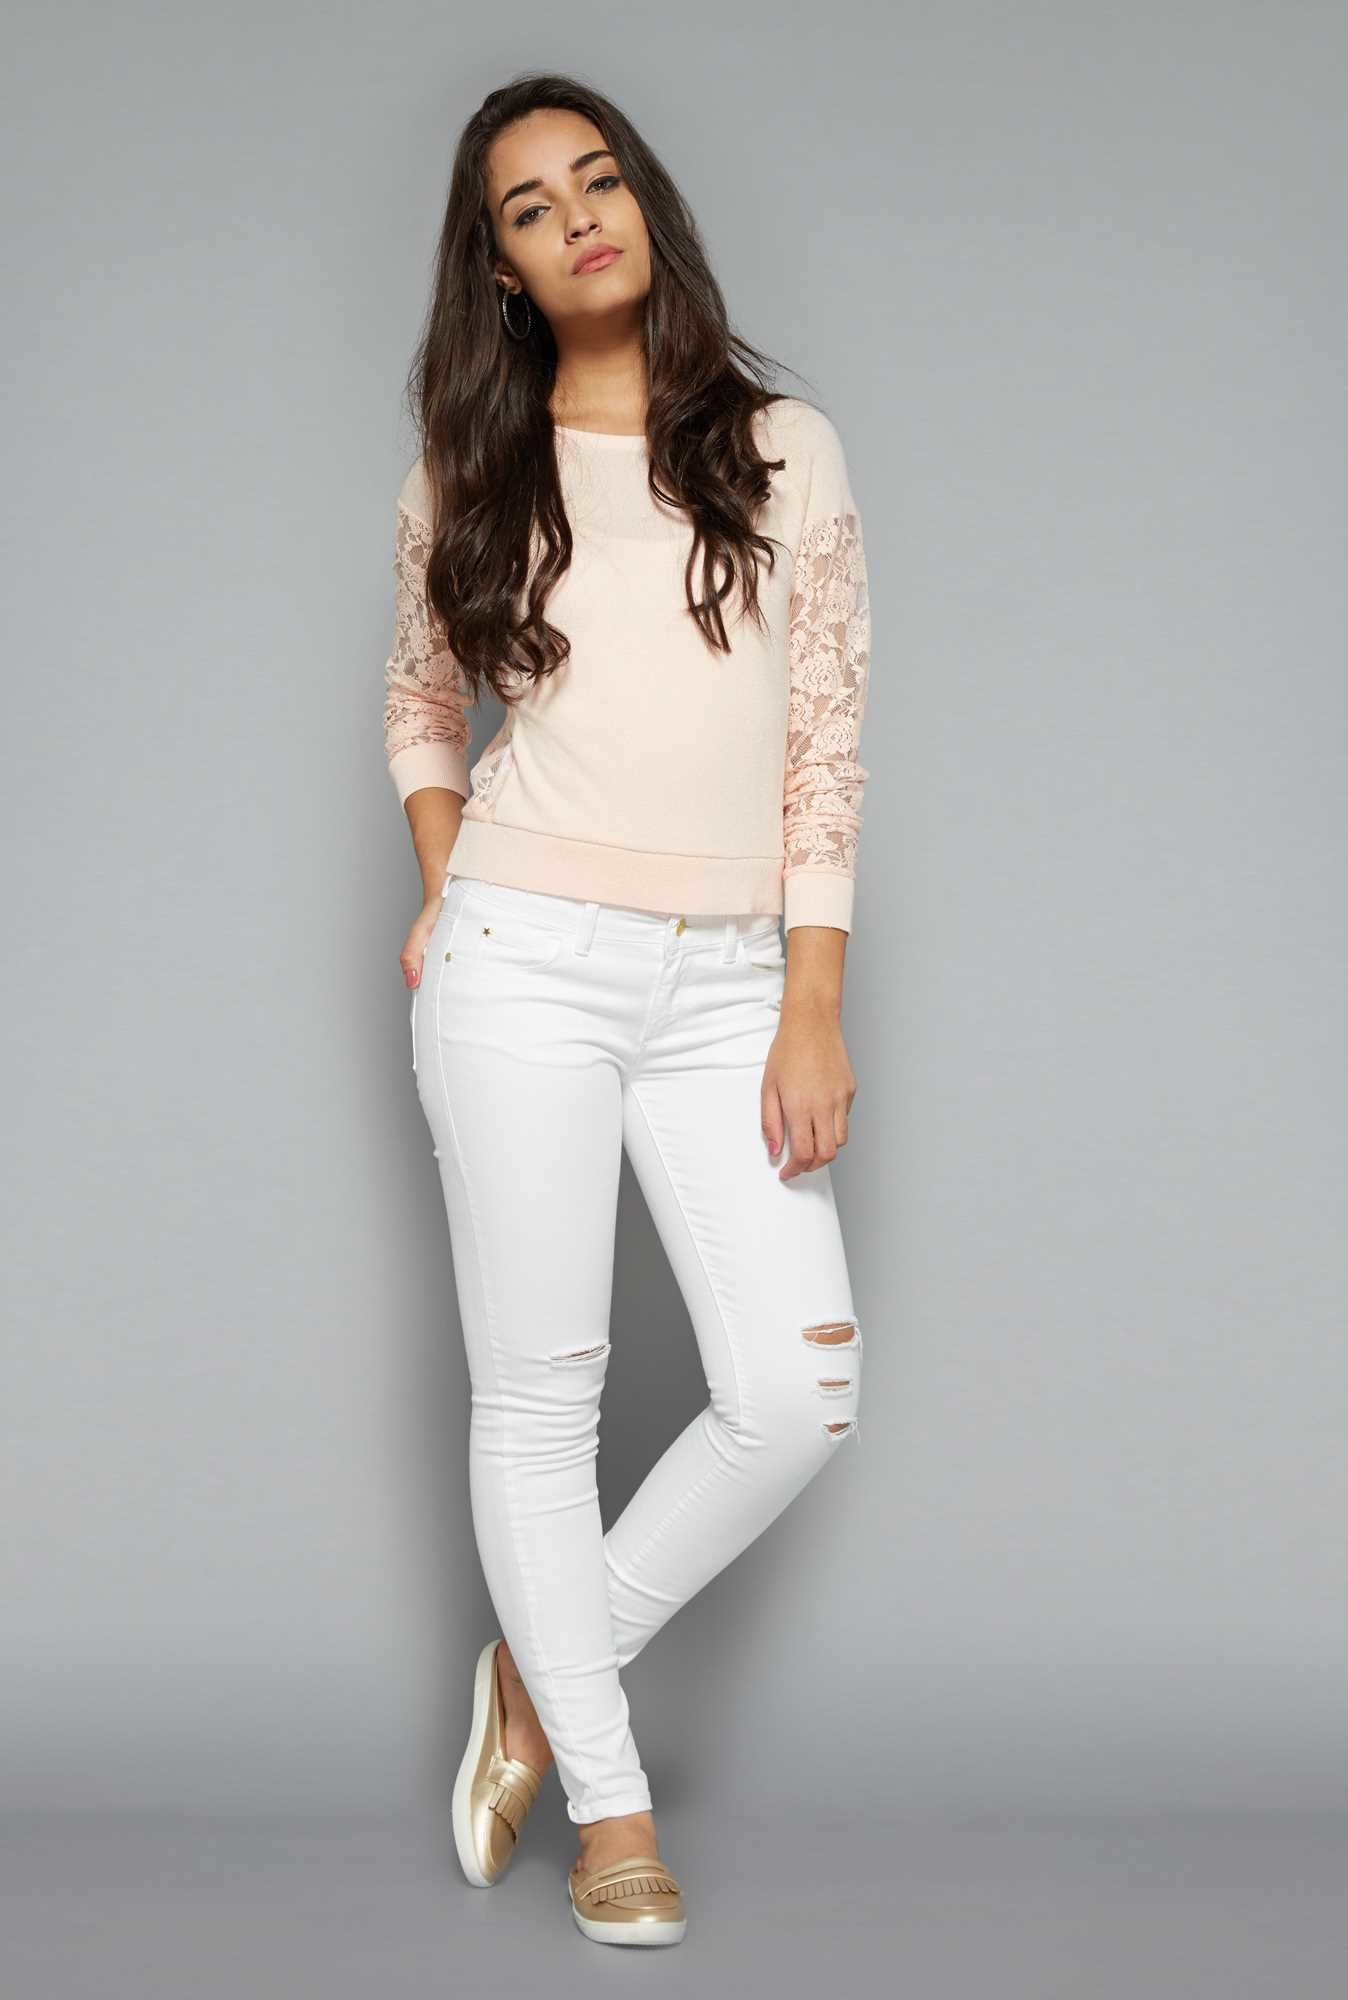 Nuon by Westside Pink Solid Top